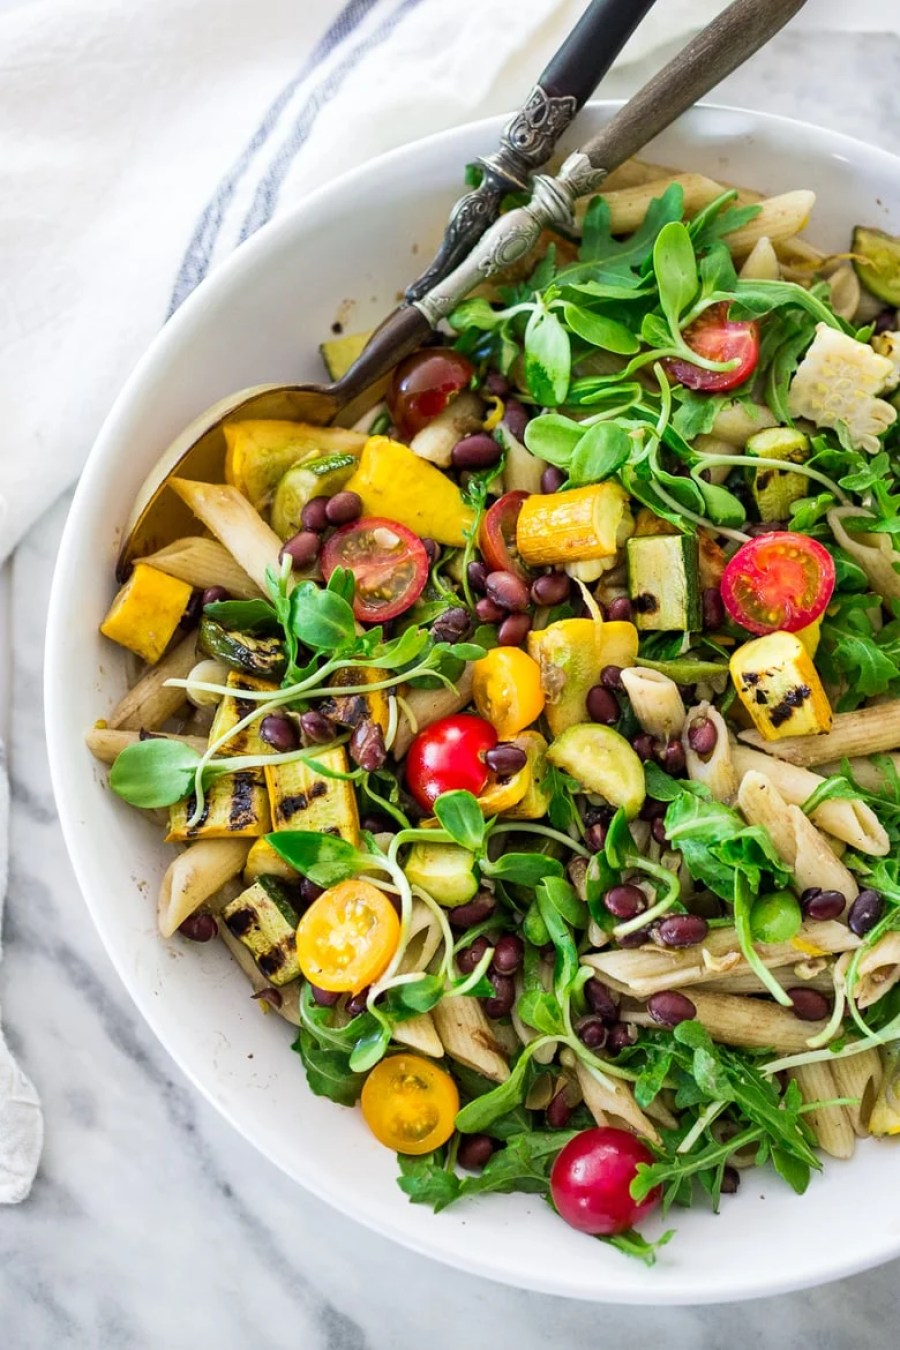 Farmers Market Veggie Pasta with grilled zucchini, corn and blackbeans or other veggies! Make with optional grain-free pasta and keep it vegan or add feta. | www.feastingathome.com